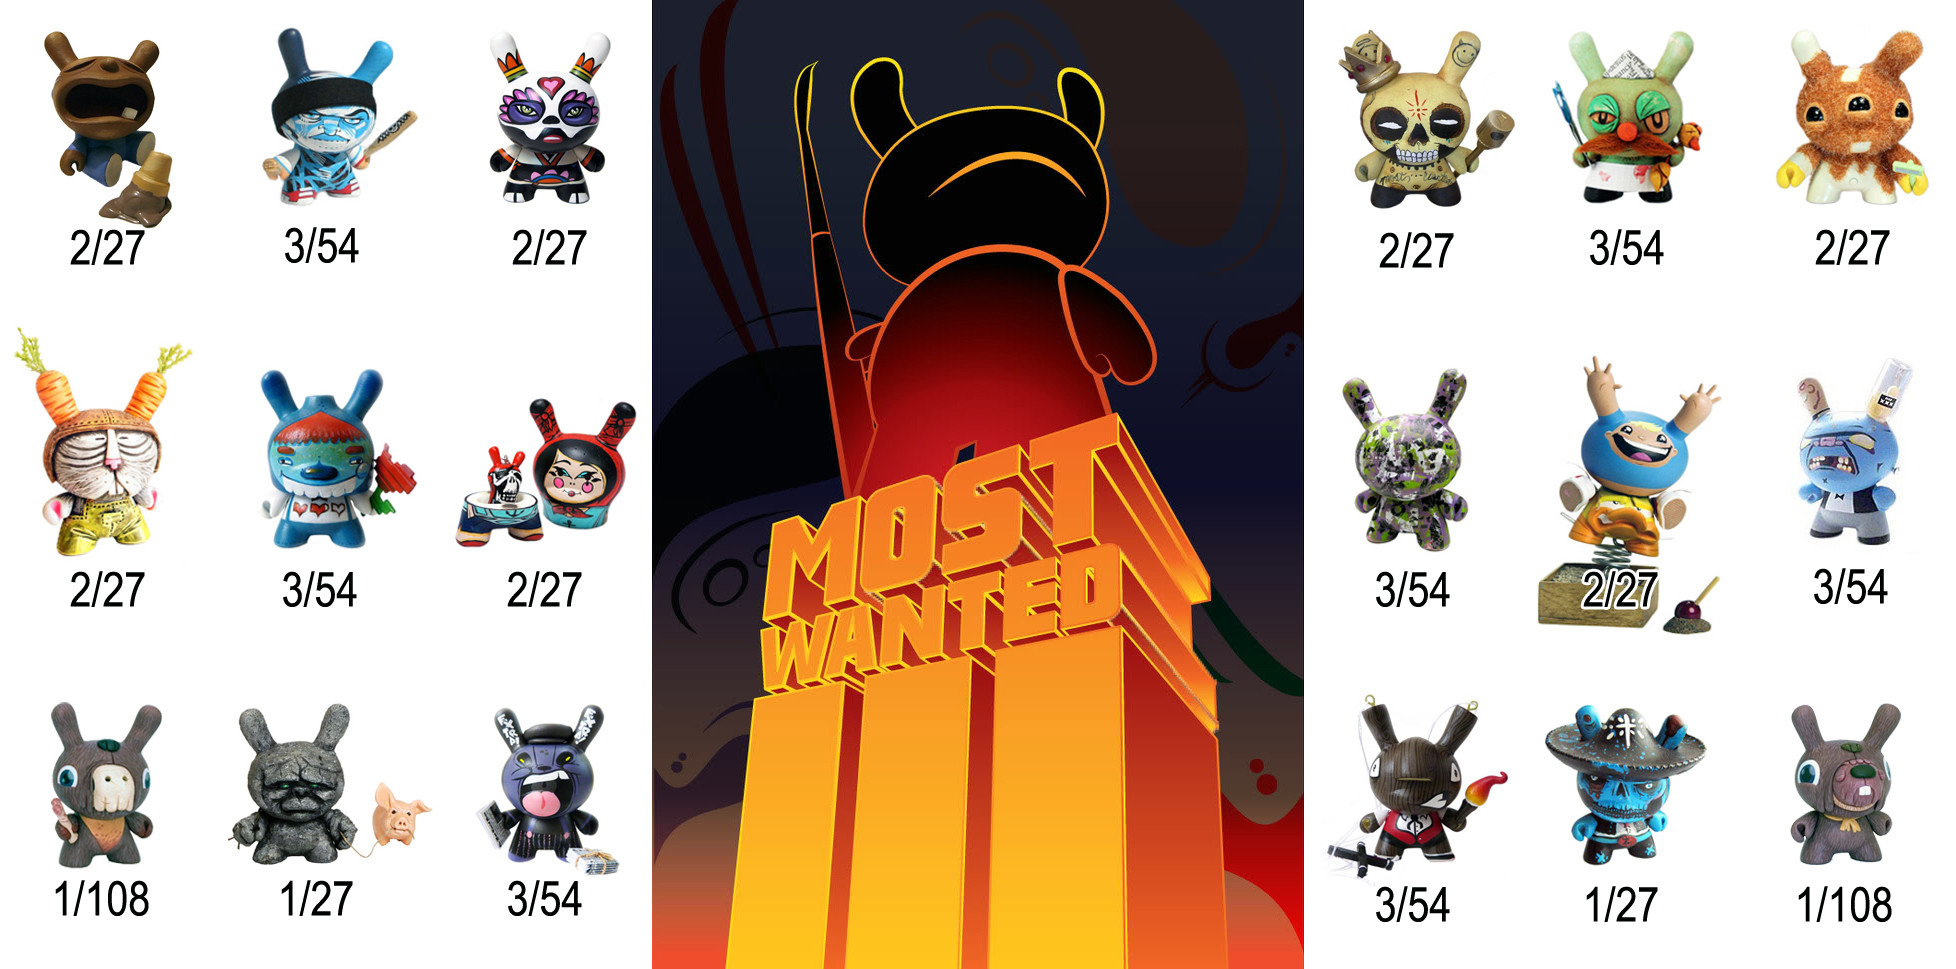 Most Wanted 3 Custom Dunny Blind Boxed Series Ratios